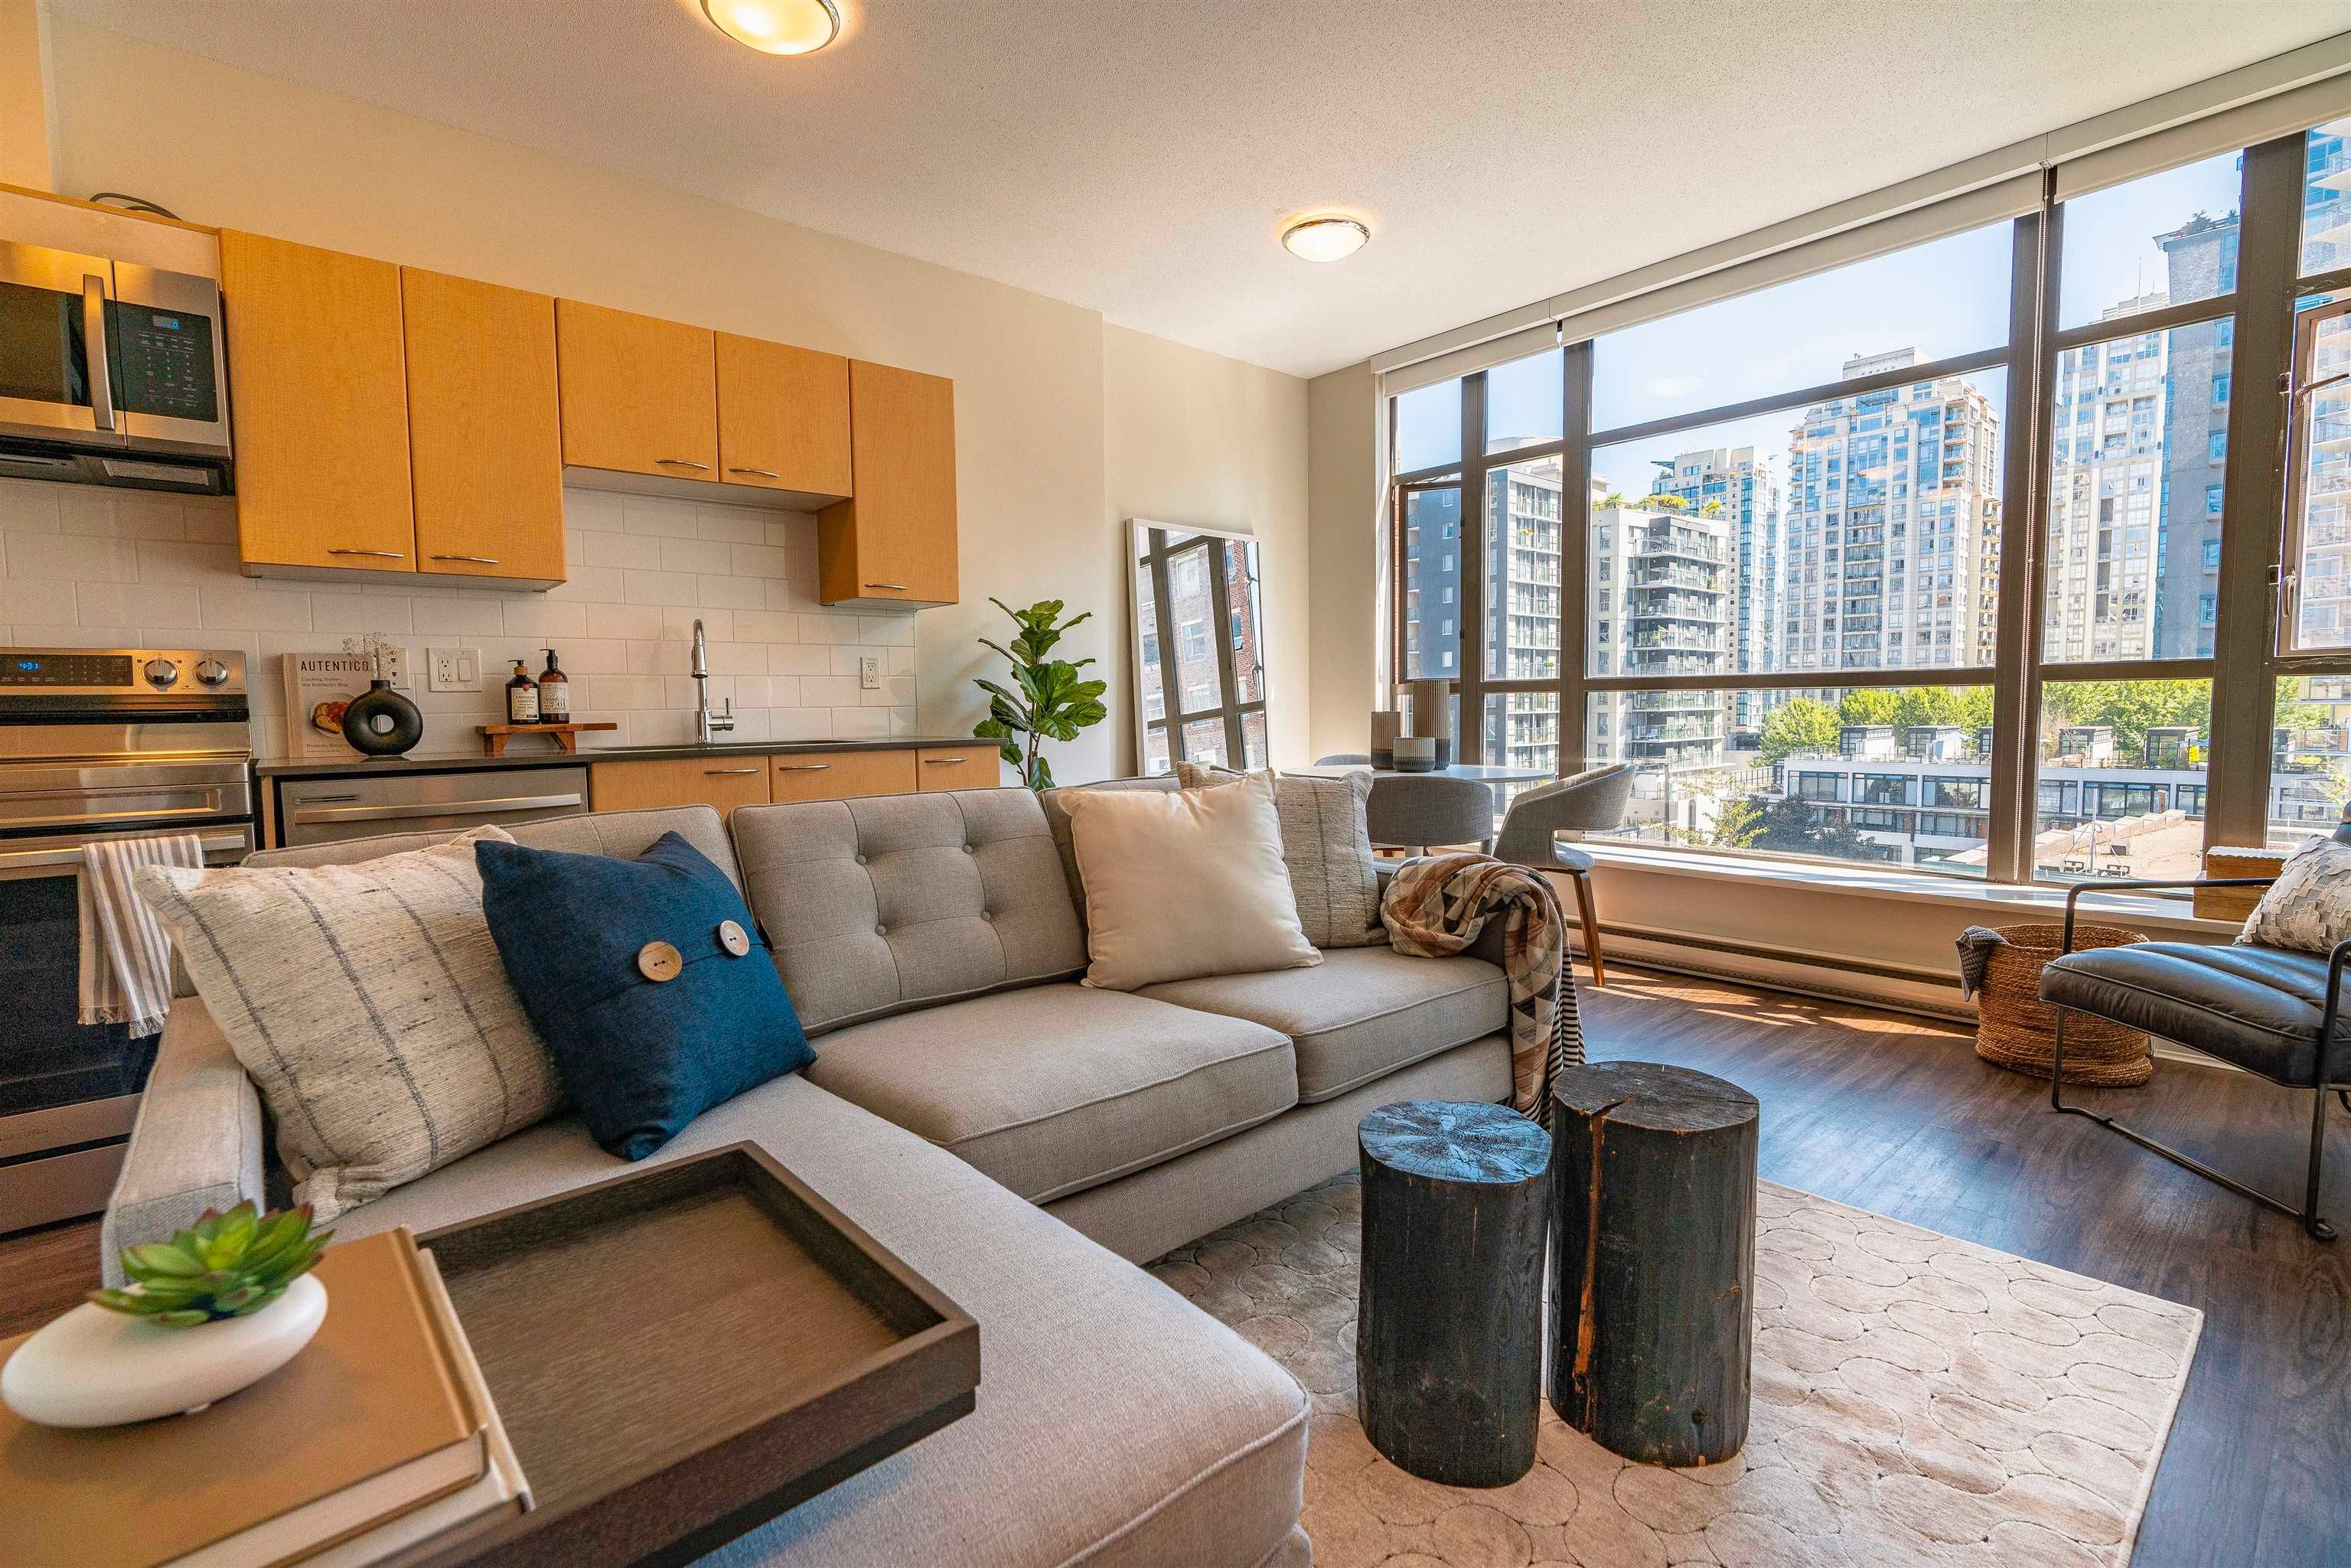 """Main Photo: 207 1249 GRANVILLE Street in Vancouver: Downtown VW Condo for sale in """"The Lex"""" (Vancouver West)  : MLS®# R2615034"""